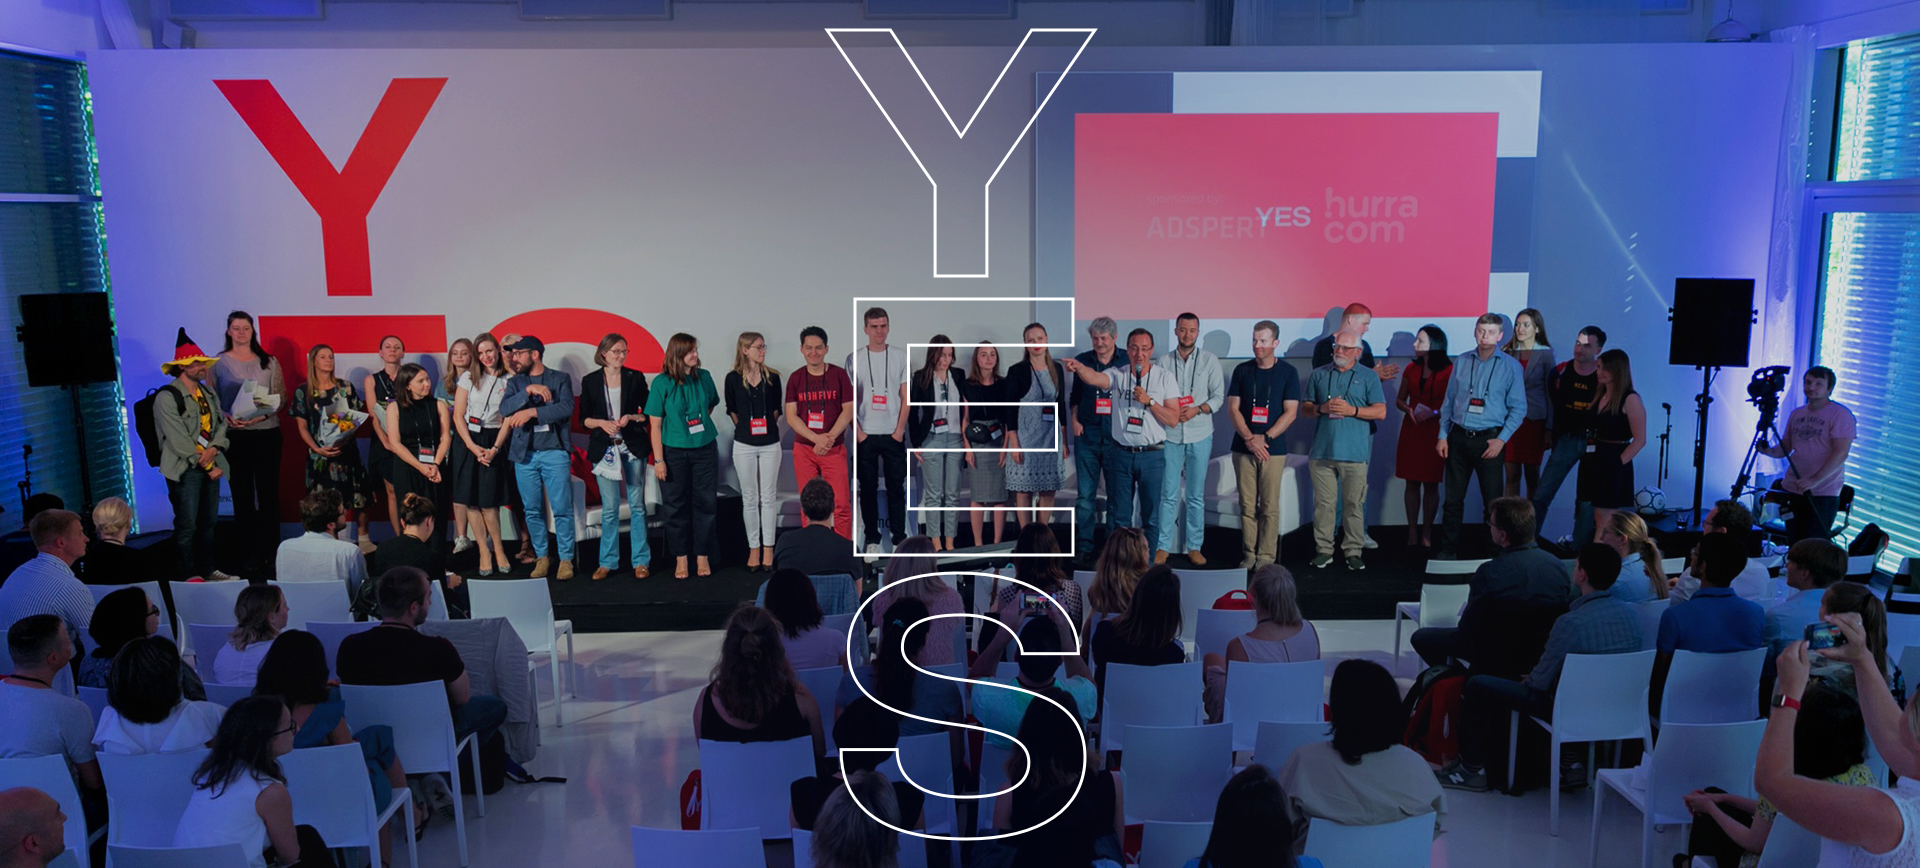 Highlights from the Yandex Expert Summit 2018